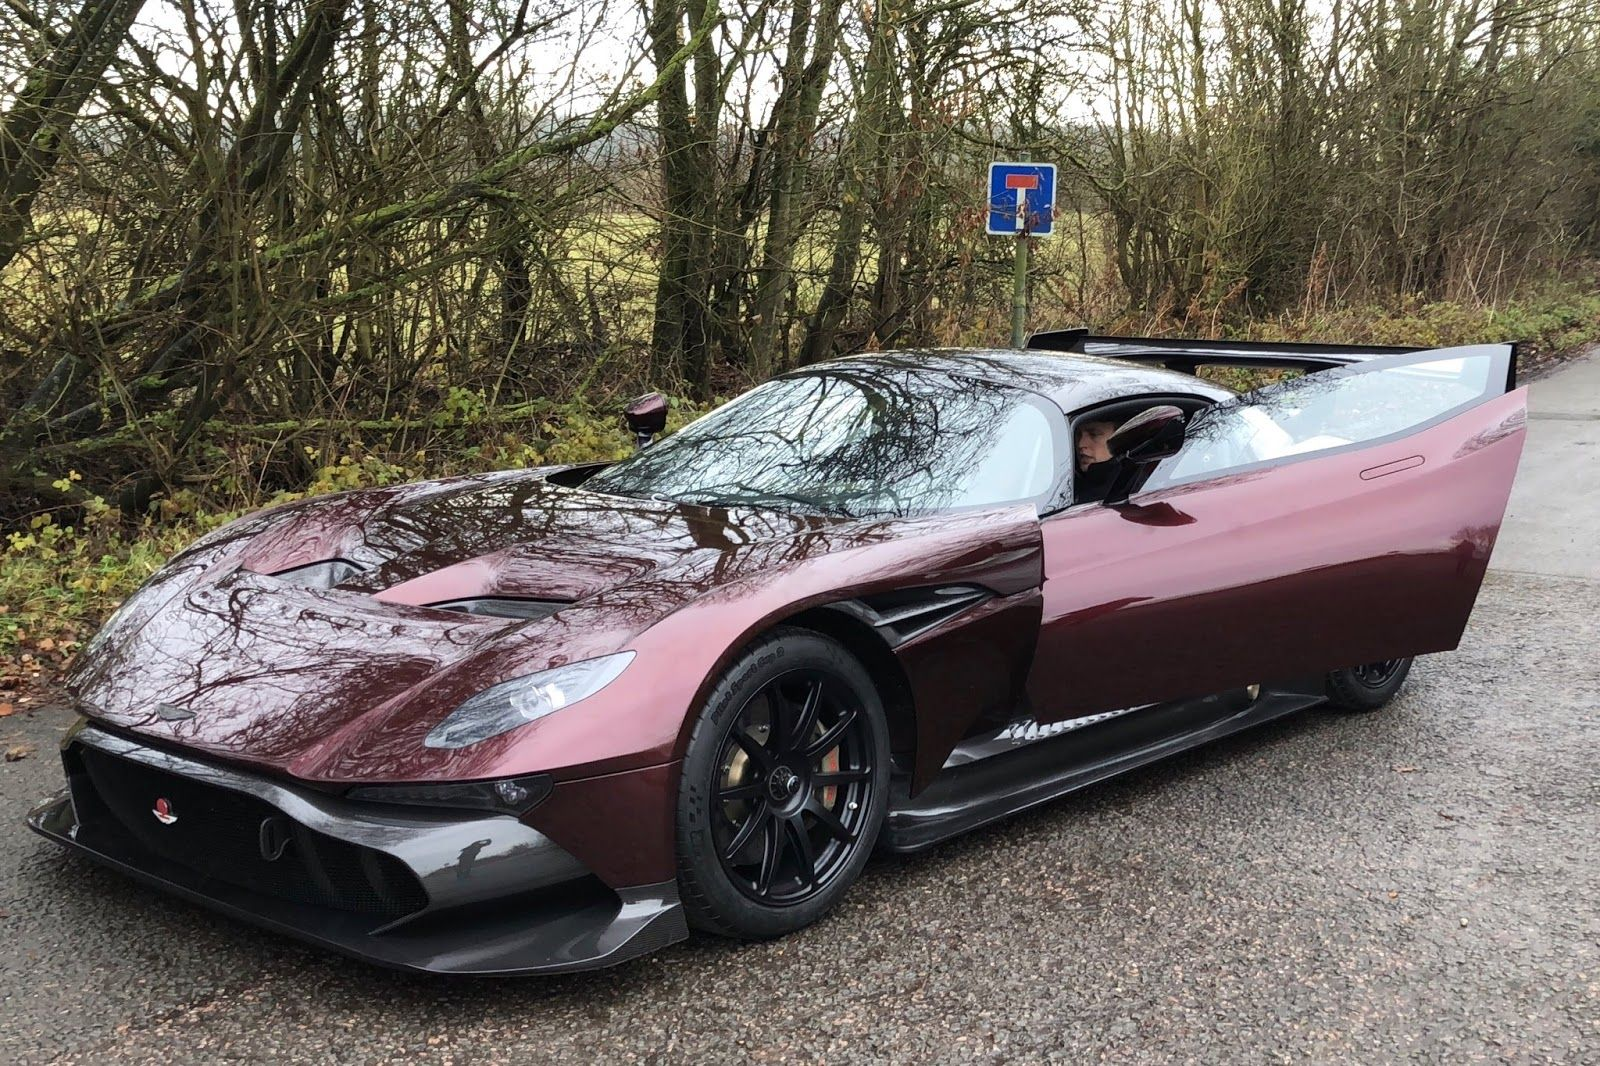 This Is The World S Only Road Legal Aston Martin Vulcan Carscoops Aston Martin Vulcan Aston Martin Classic Car Insurance